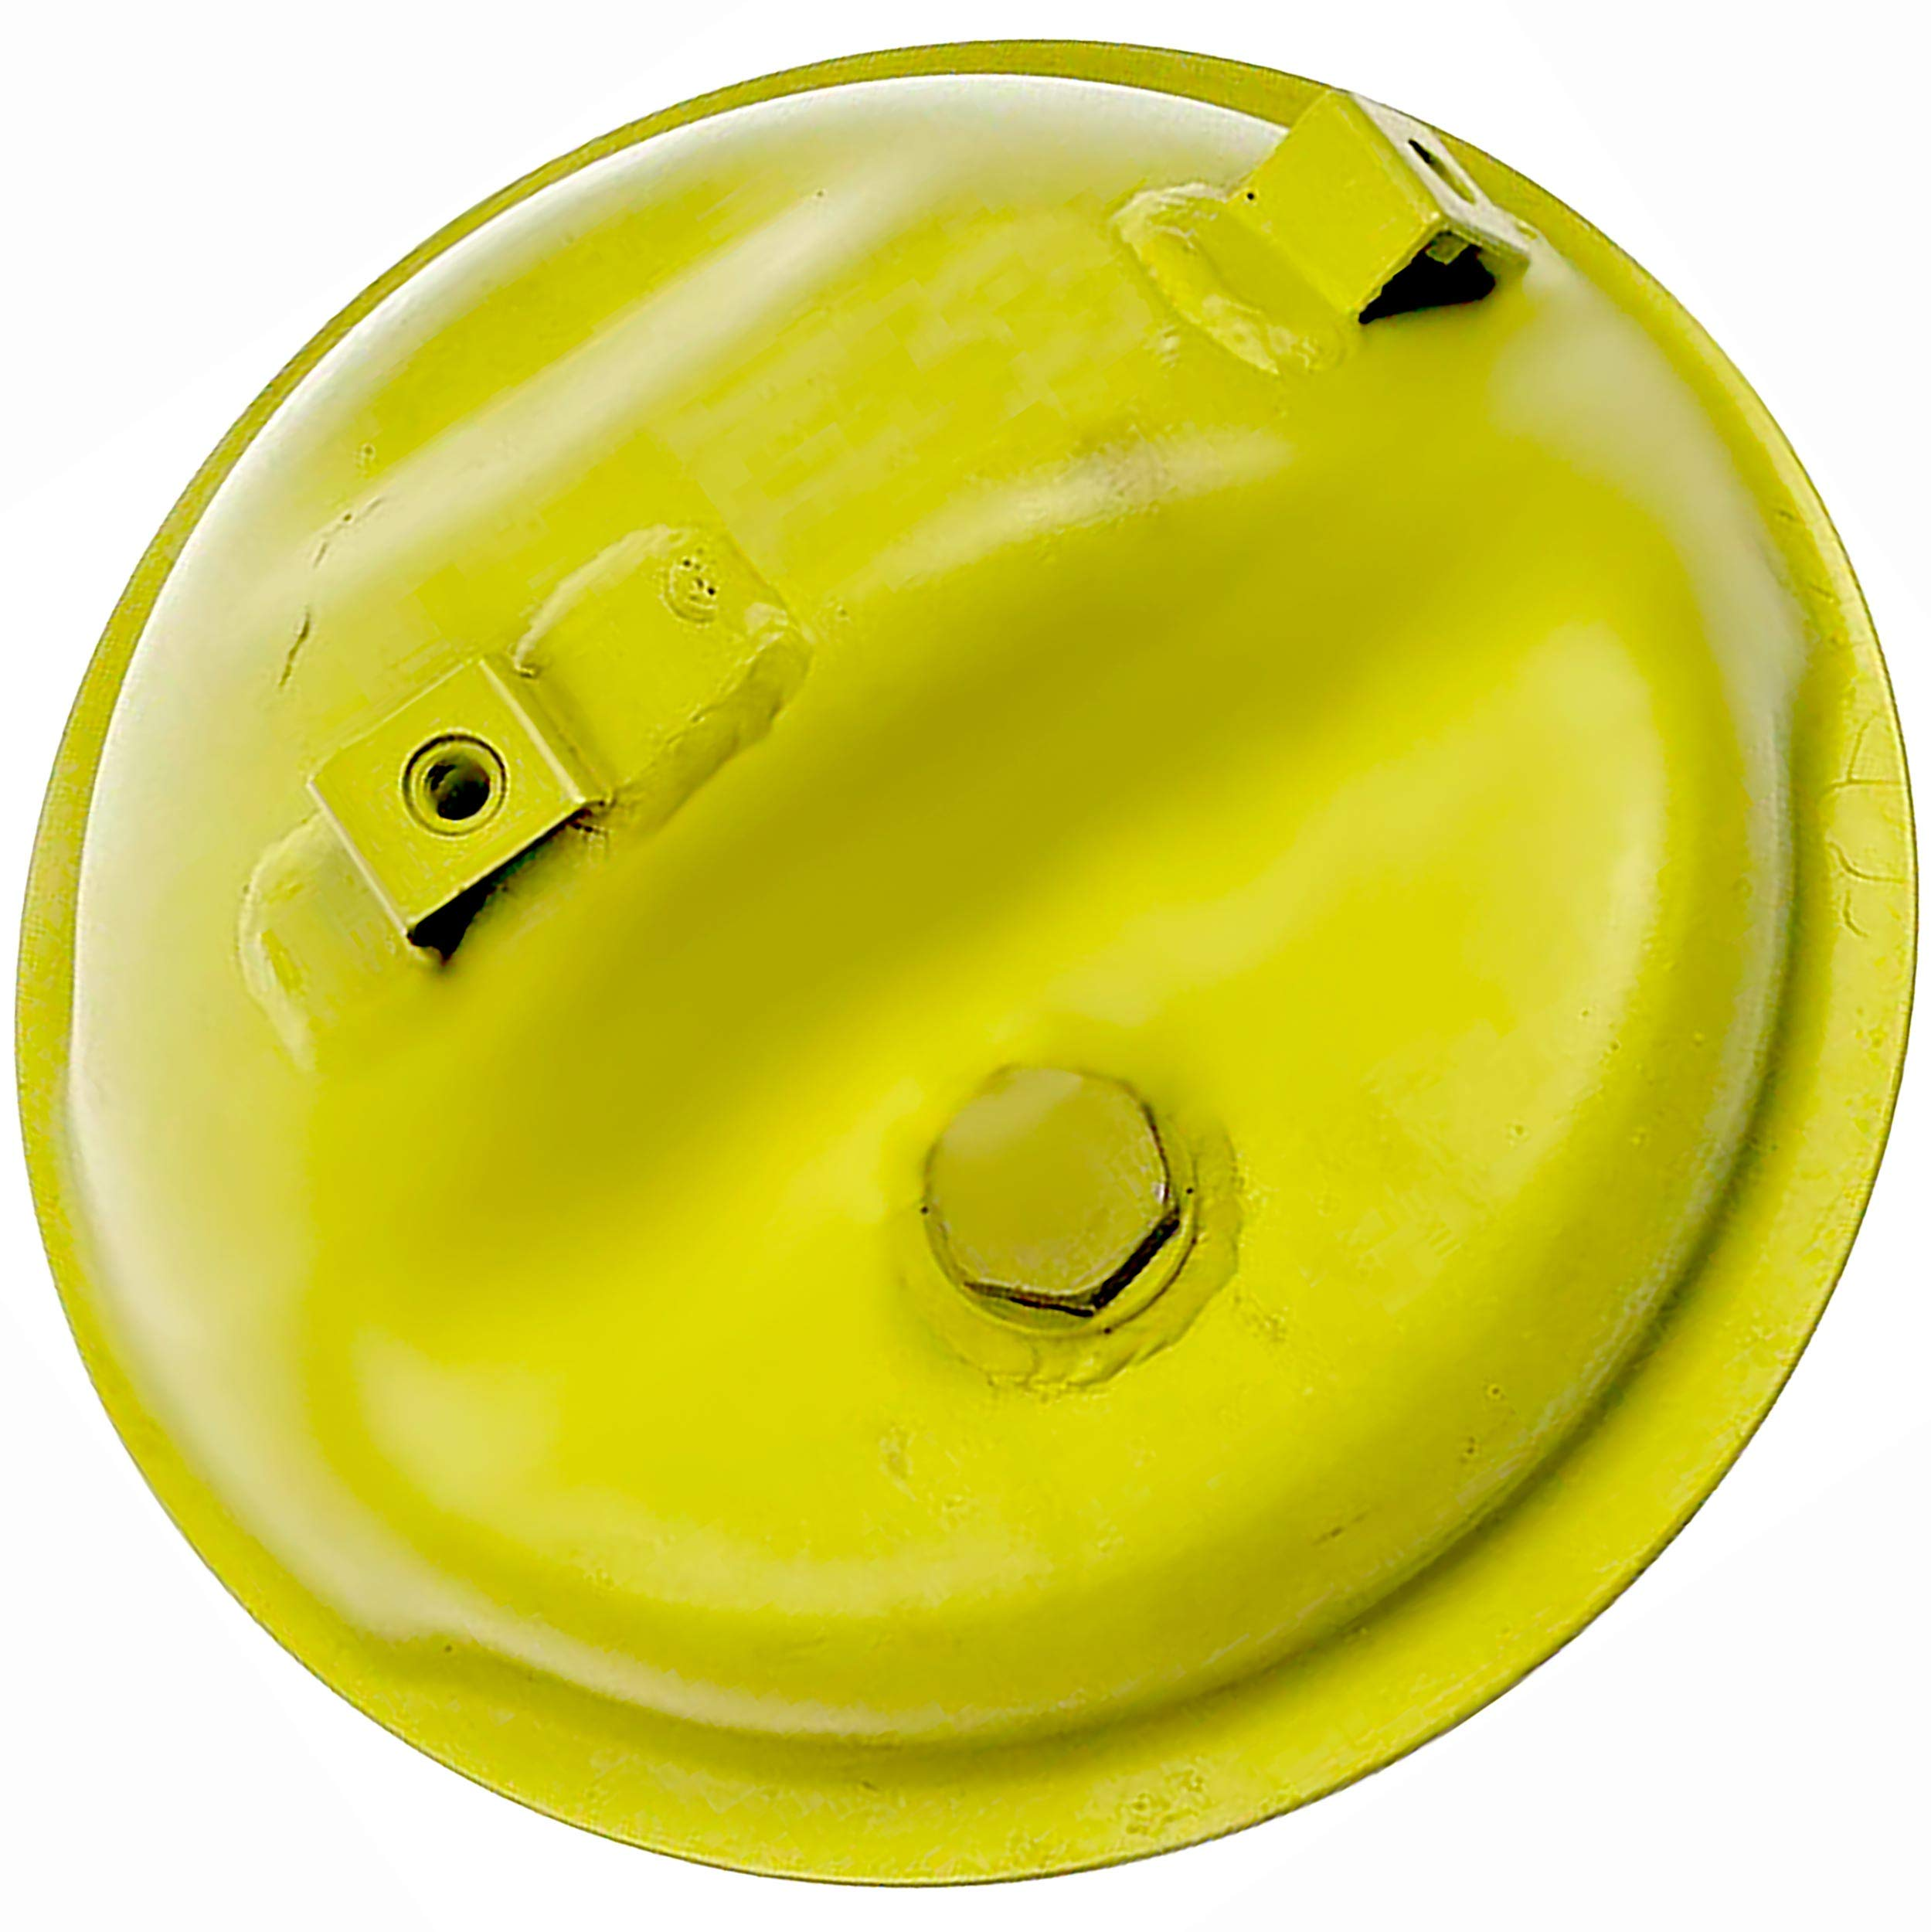 APDTY 141382 Rear Differential Axle Housing Cover w/Drain Fill Hole Fits 1996-2002 Toyota 4Runner or 1995-2004 Toyota Tacoma (Repairs 42110-35680, 42110-35681, 42110-35700, 42110-35701, 42110-35710)